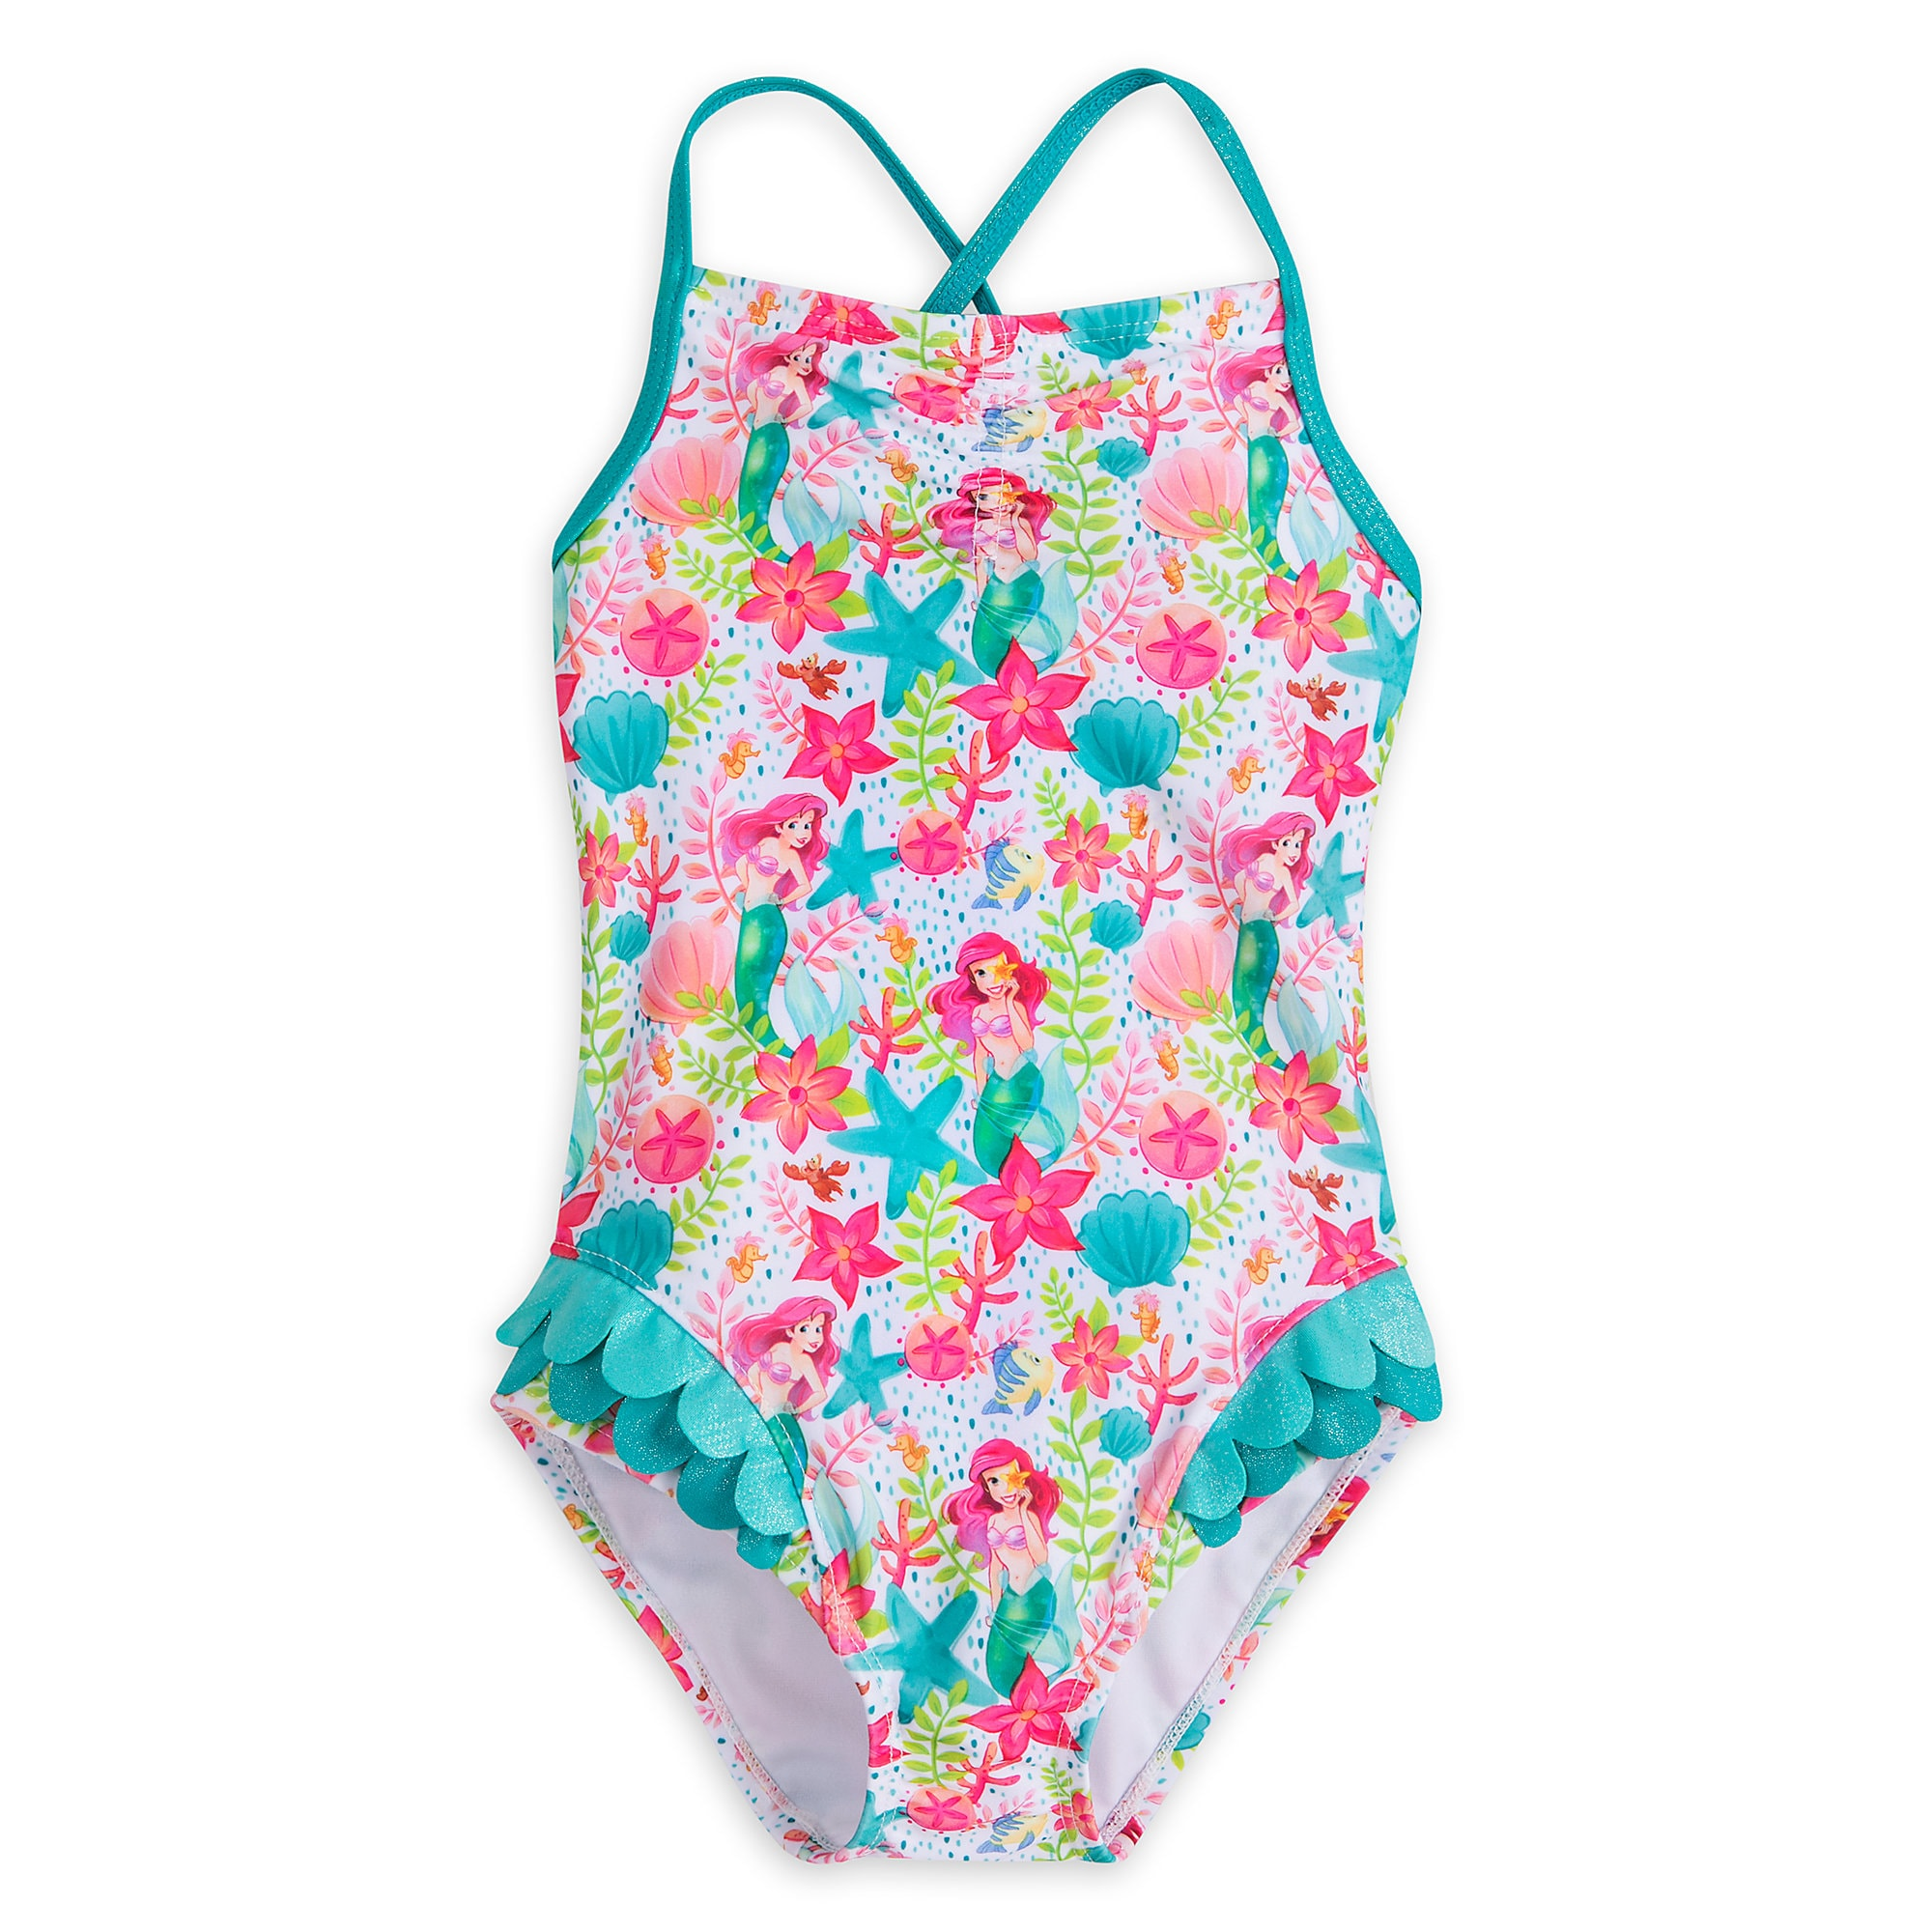 5aa15992df802 Ariel Swimsuit for Girls | shopDisney